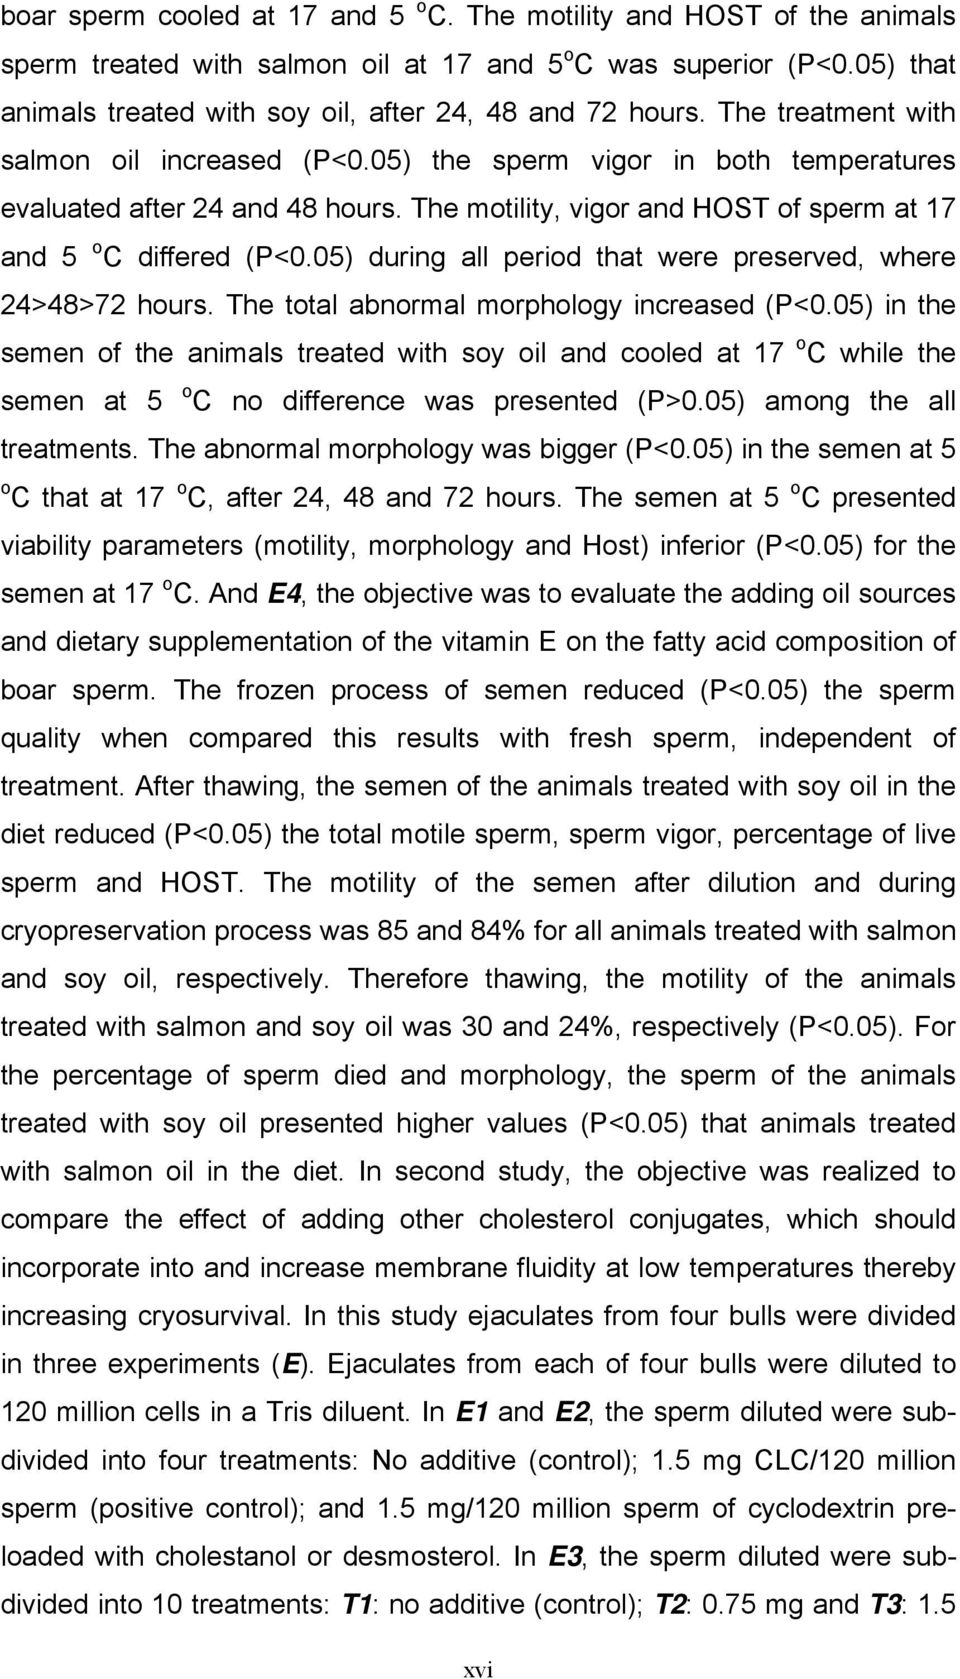 The motility, vigor and HOST of sperm at 17 and 5 o C differed (P<0.05) during all period that were preserved, where 24>48>72 hours. The total abnormal morphology increased (P<0.